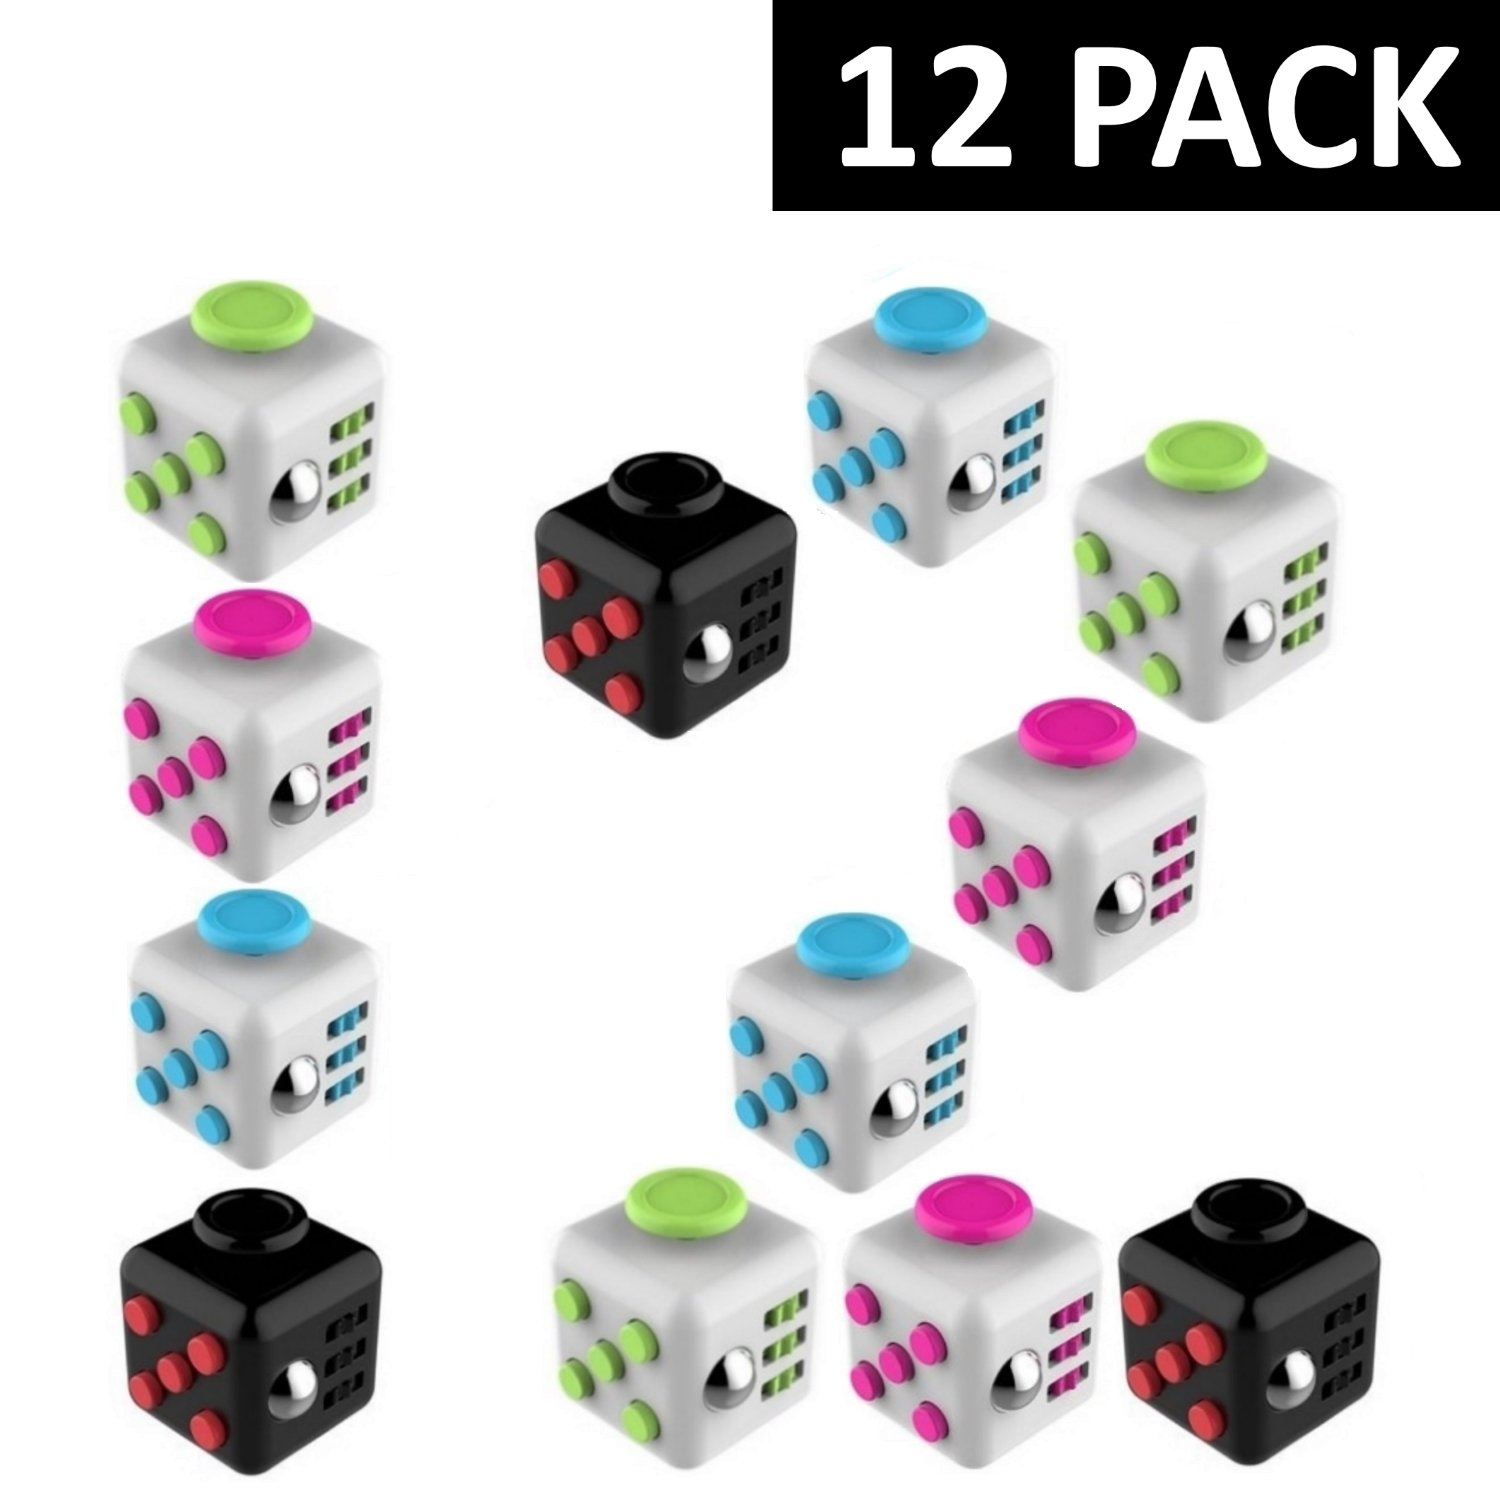 Fidget Cube (12 Pack) - In 12 Individual Boxes - Great Birthday Party Favors for Kids - Four Color Assortment - Fidget Toys for Kids & Adults - Relieves Boredom, Stress & Anxiety